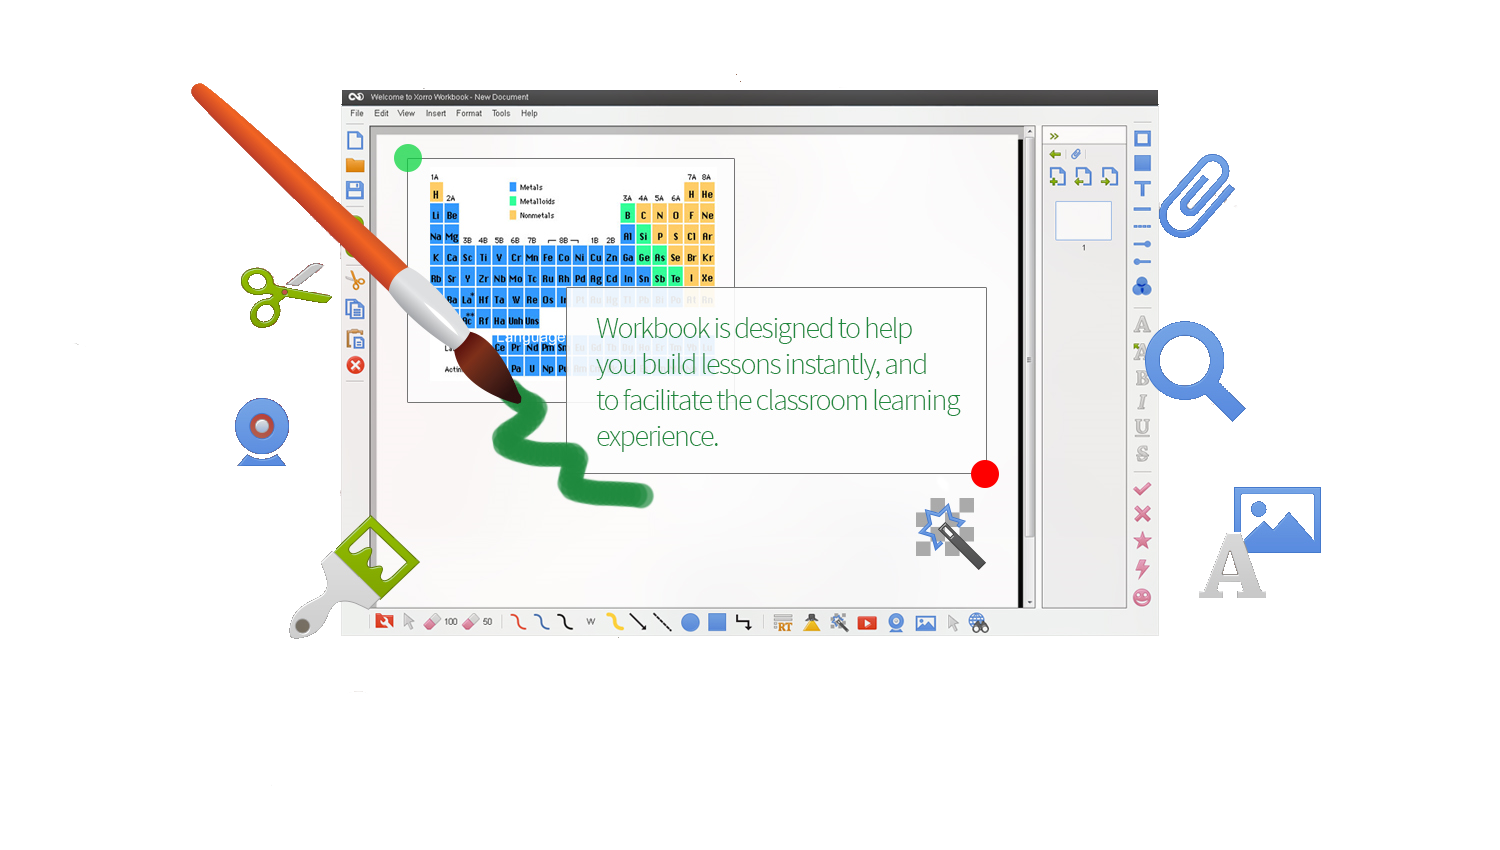 Workbook empowers your whiteboards